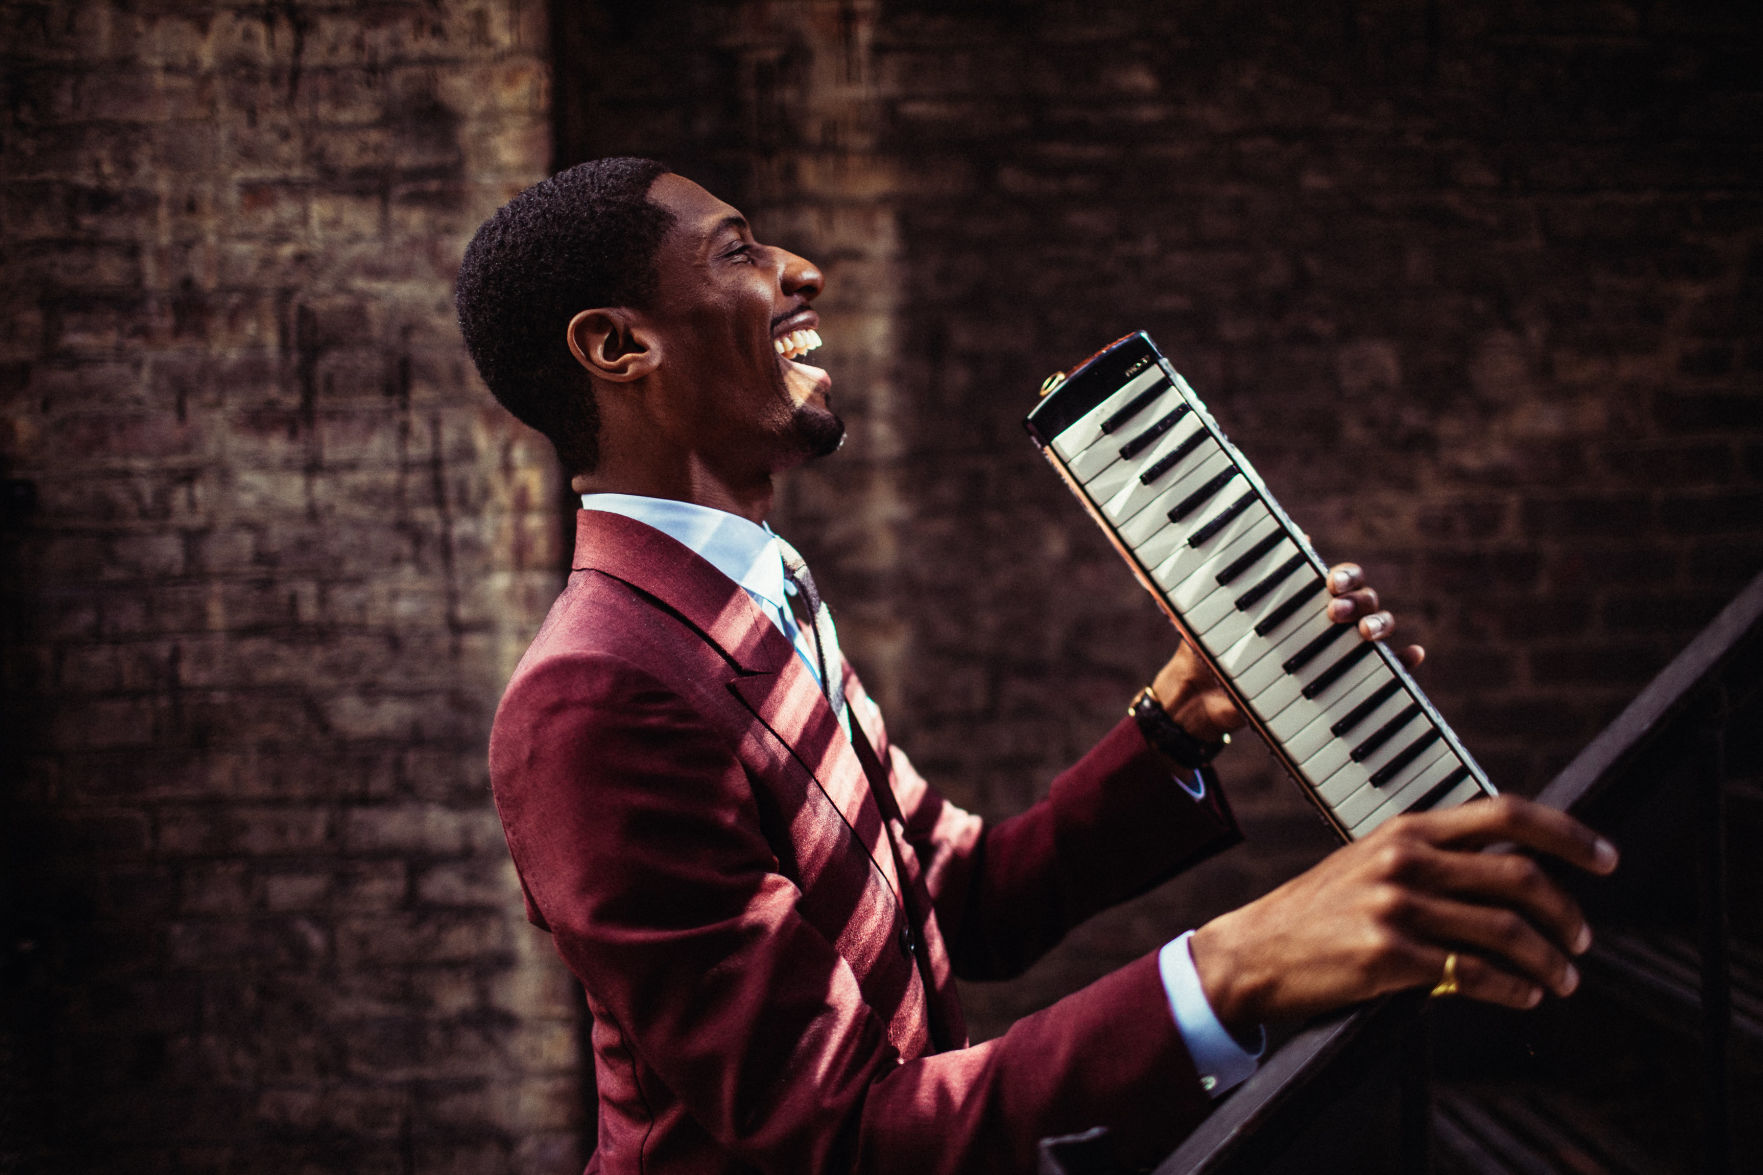 Jon Batiste of 'The Late Show with Stephen Colbert' and The Dap-Kings collaborate | Post and Courier